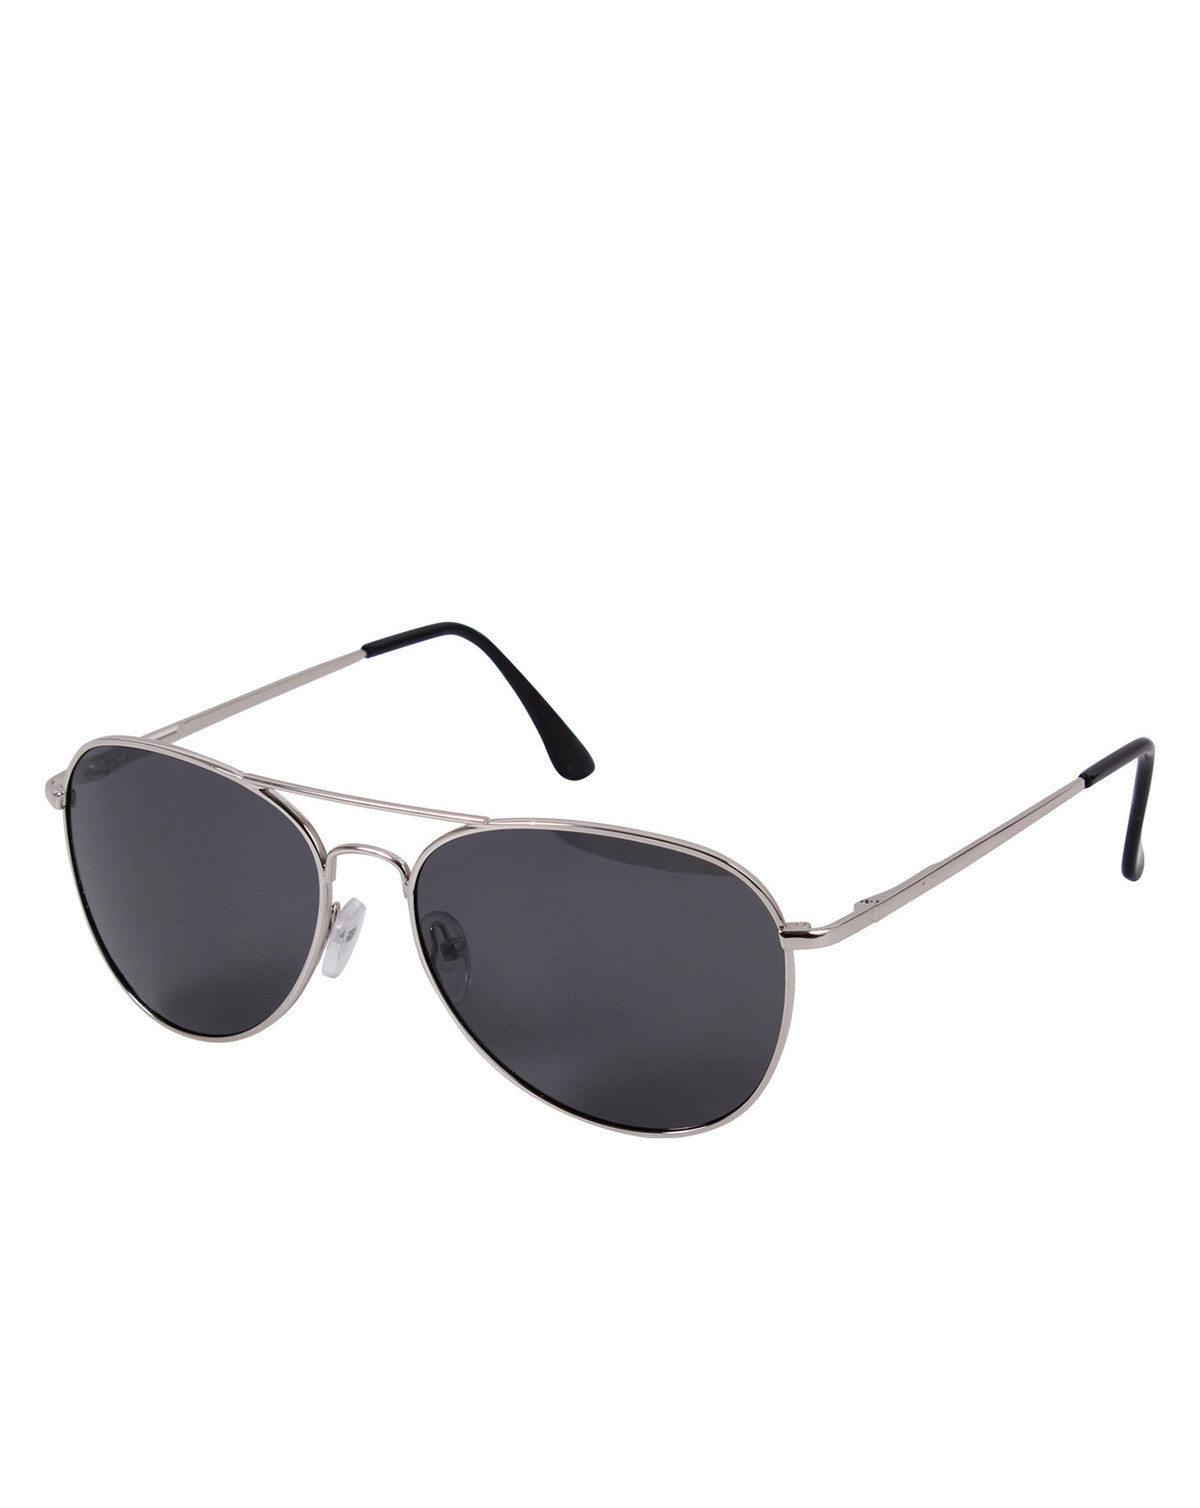 Image of   Rothco Solbriller 58mm Polarized (Krom m. Røget Glas, One Size)